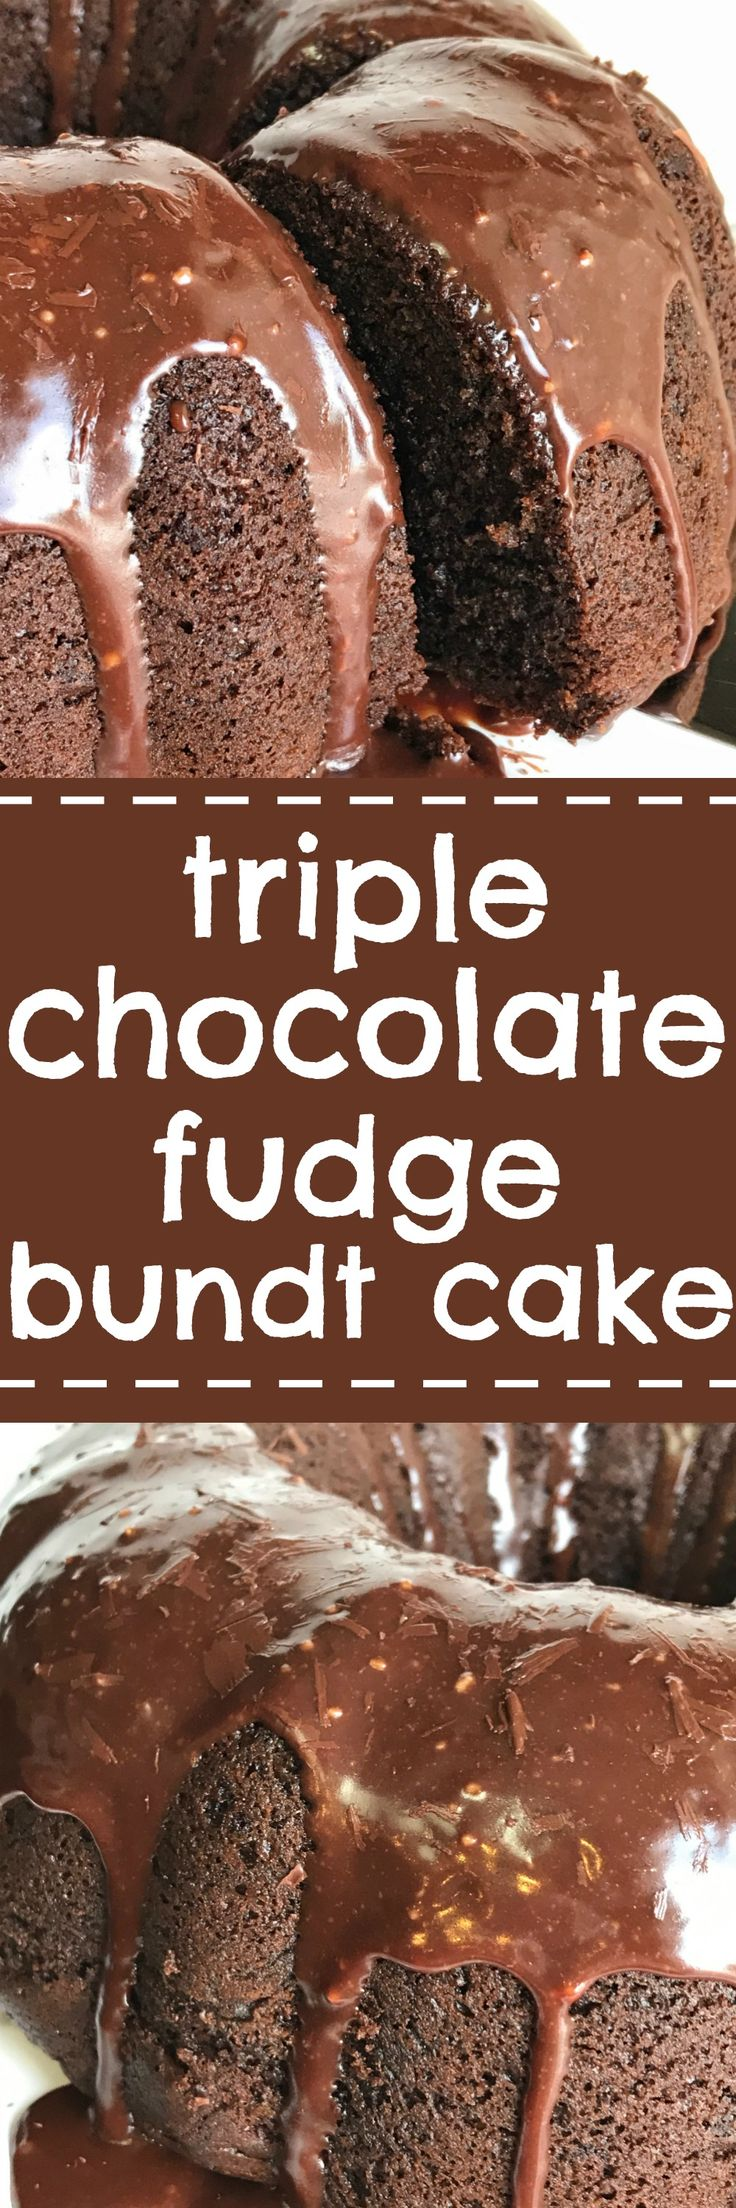 Triple Chocolate Fudge Bundt Cake- you won't believe how easy this triple chocolate fudge bundt cake is to make. Starts with a boxed cake mix that doctored up with chocolate three ways and topped with a milk chocolate ganache glaze. This cake is so moist and loaded with chocolate | togetherasfamily.com